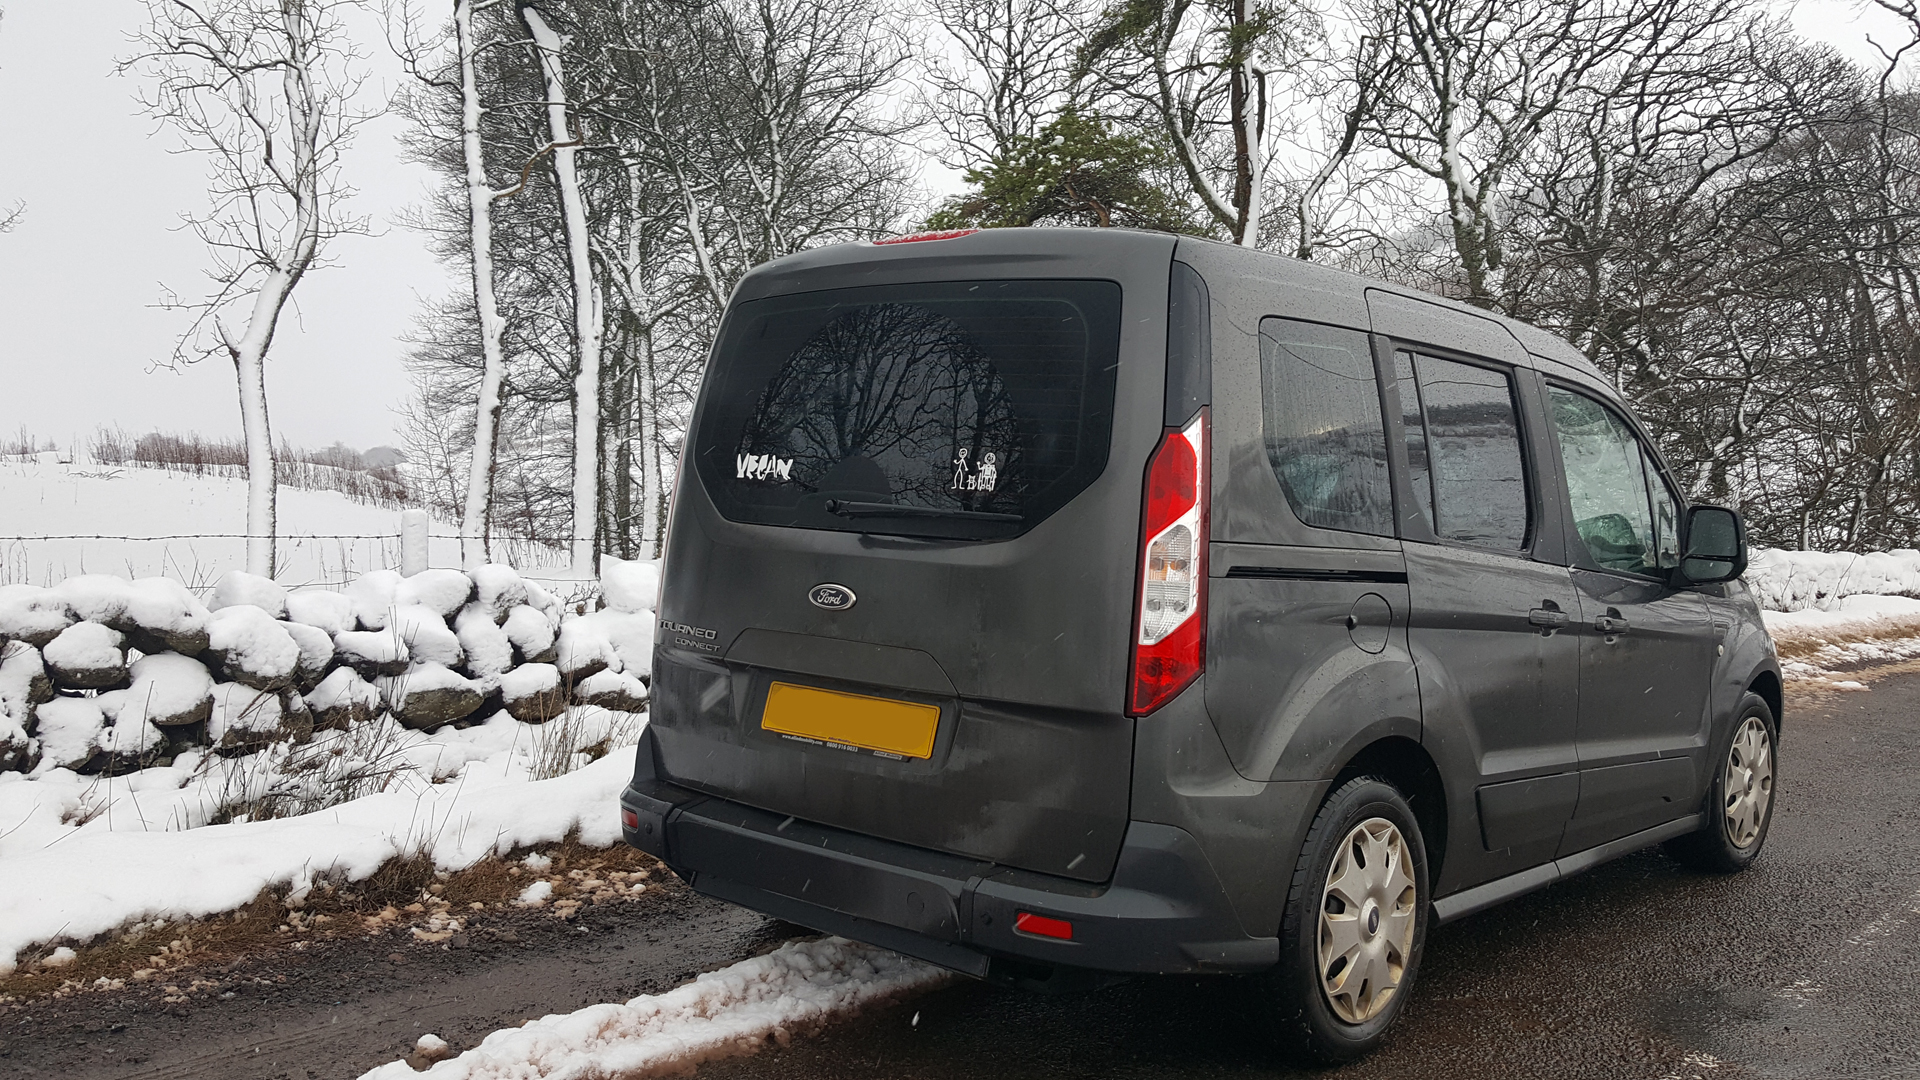 Ford Connect Freedom™ WAV parked on a snowy road surrounded by snow covered trees: 6 Top Tips How to Choose The Best Wheelchair Accessible Vehicle (WAV)